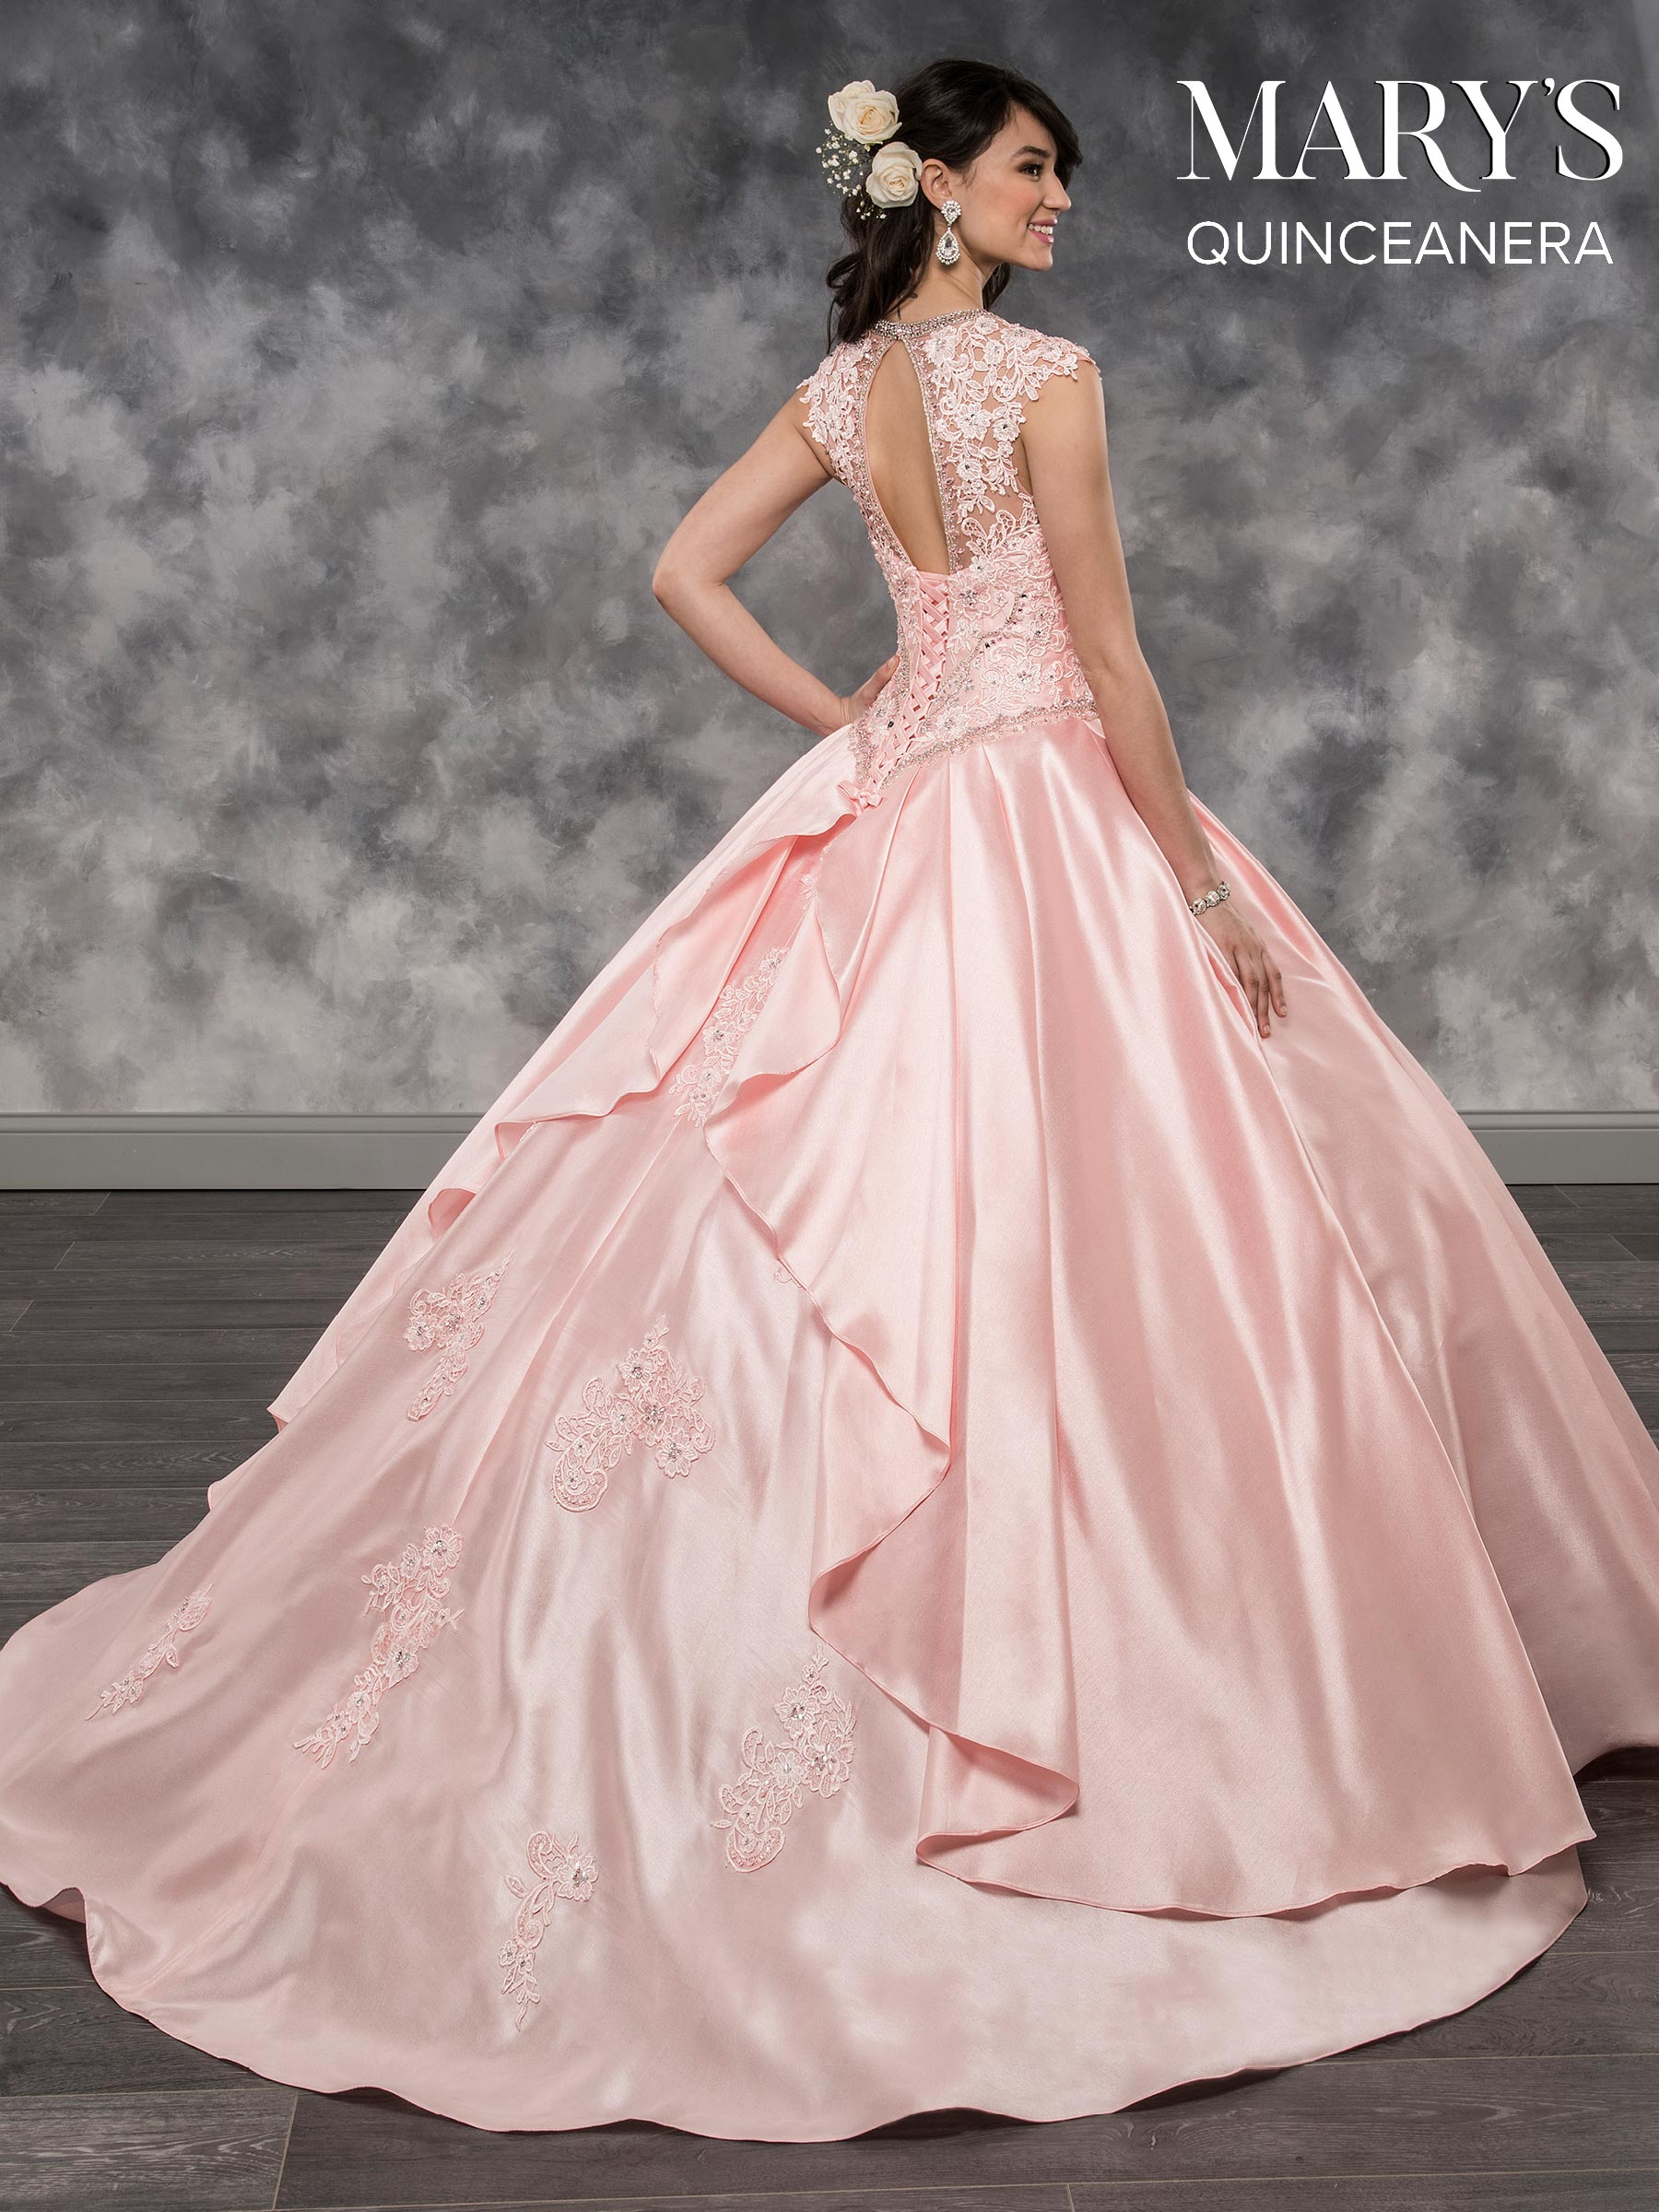 Marys Quinceanera Dresses | Mary's Quinceanera | Style - MQ2025